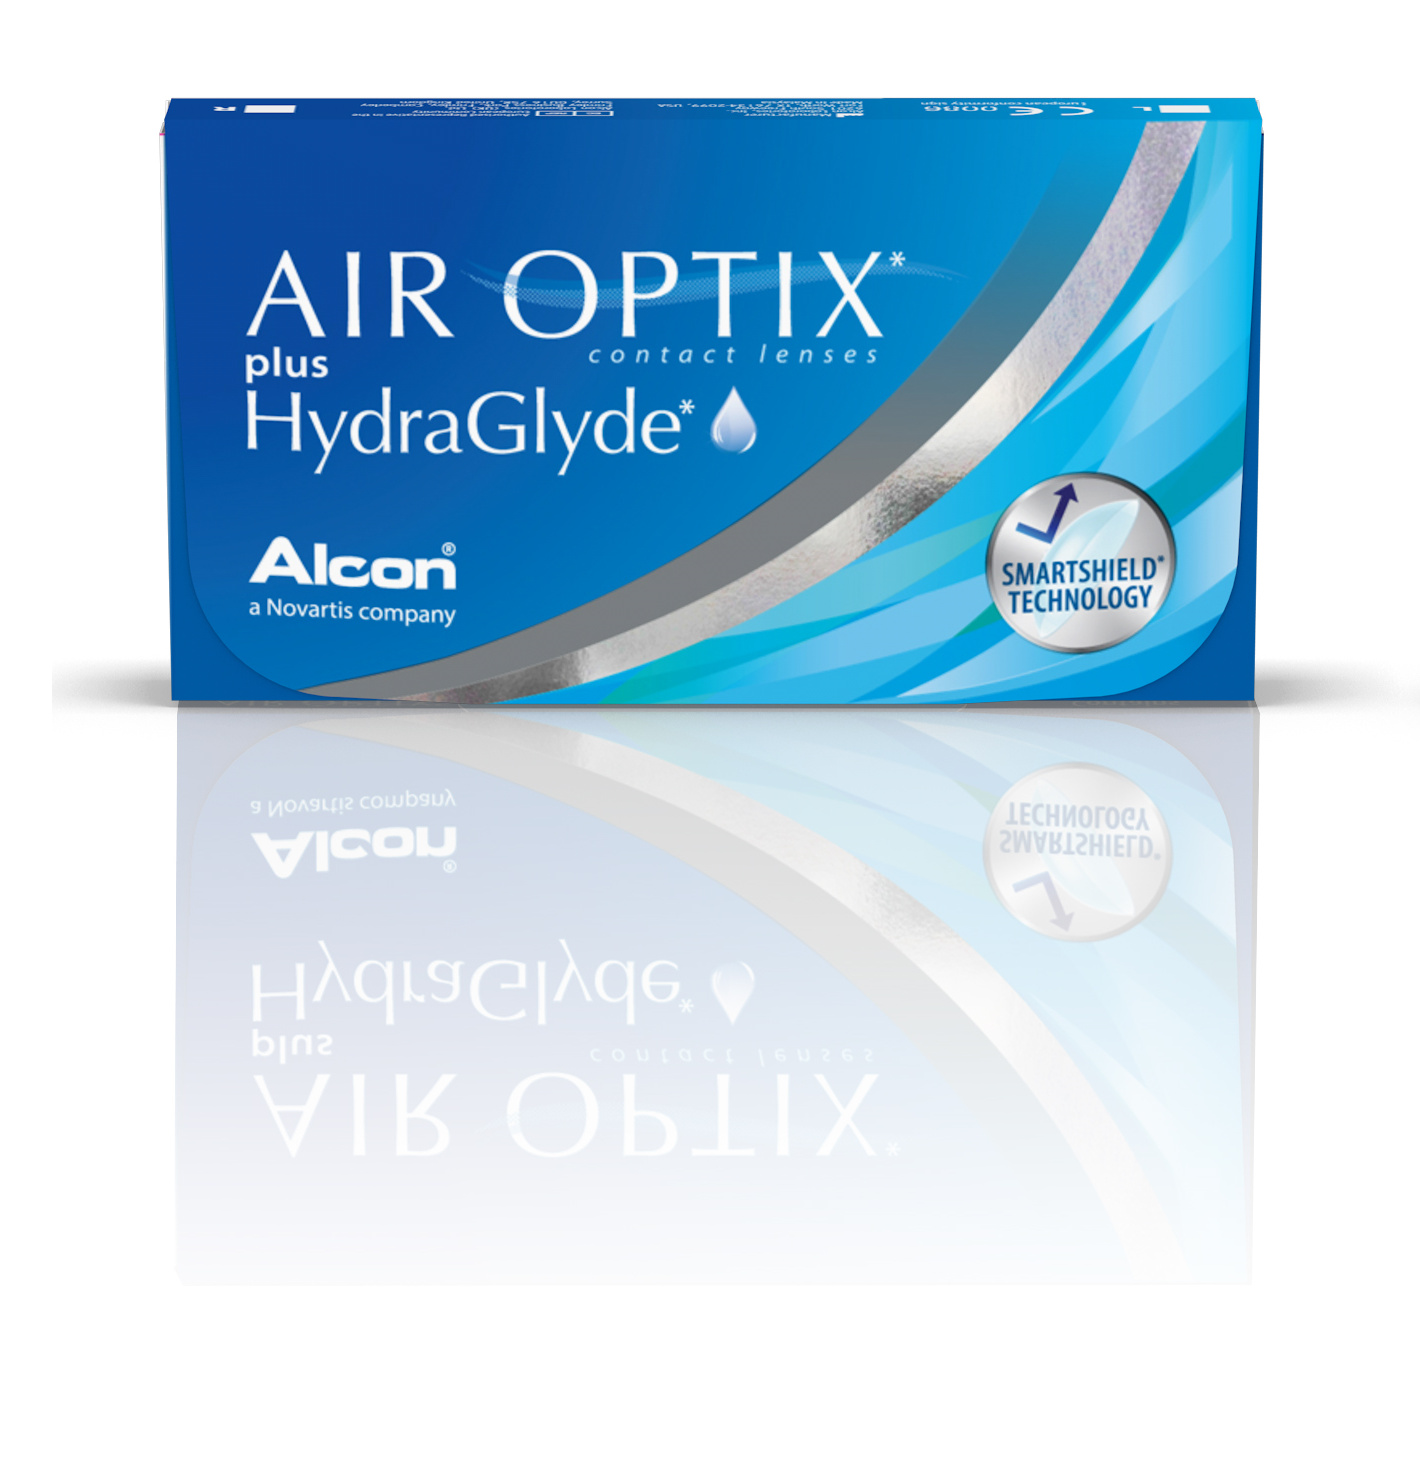 AIR OPTIX AQUA.jpg